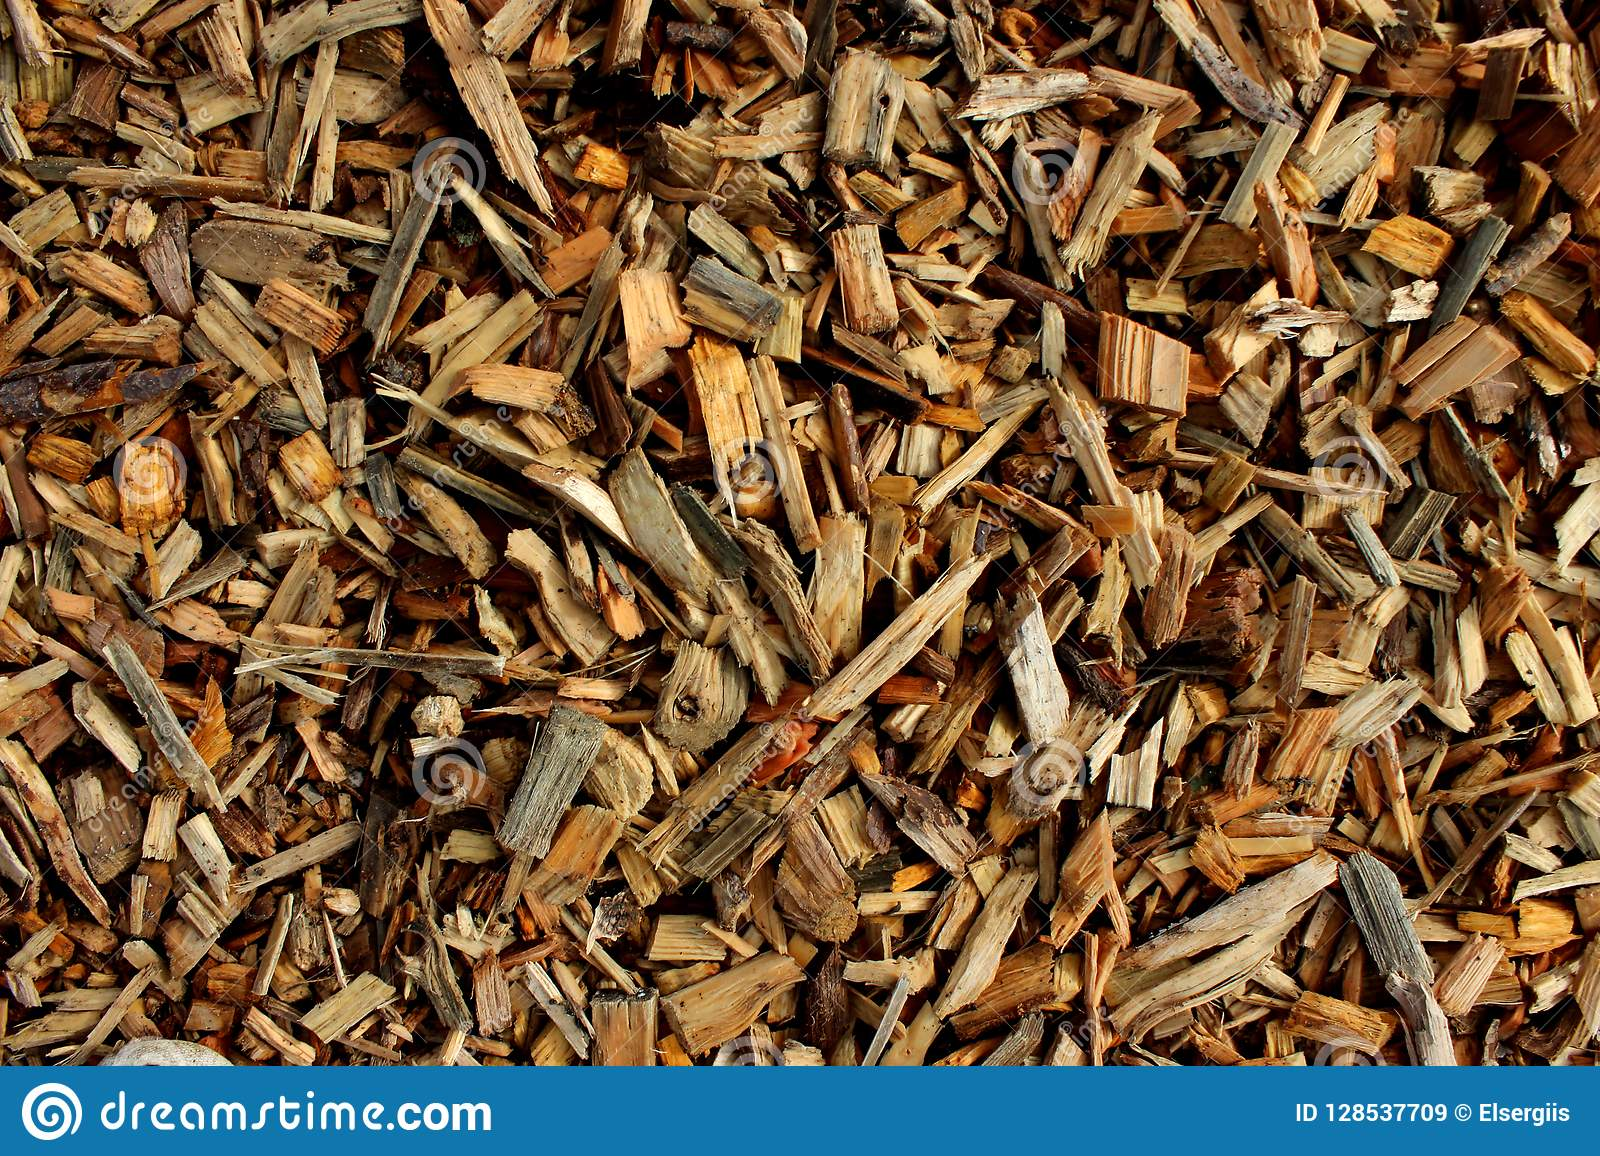 Wood chips for creating chipboard or lining